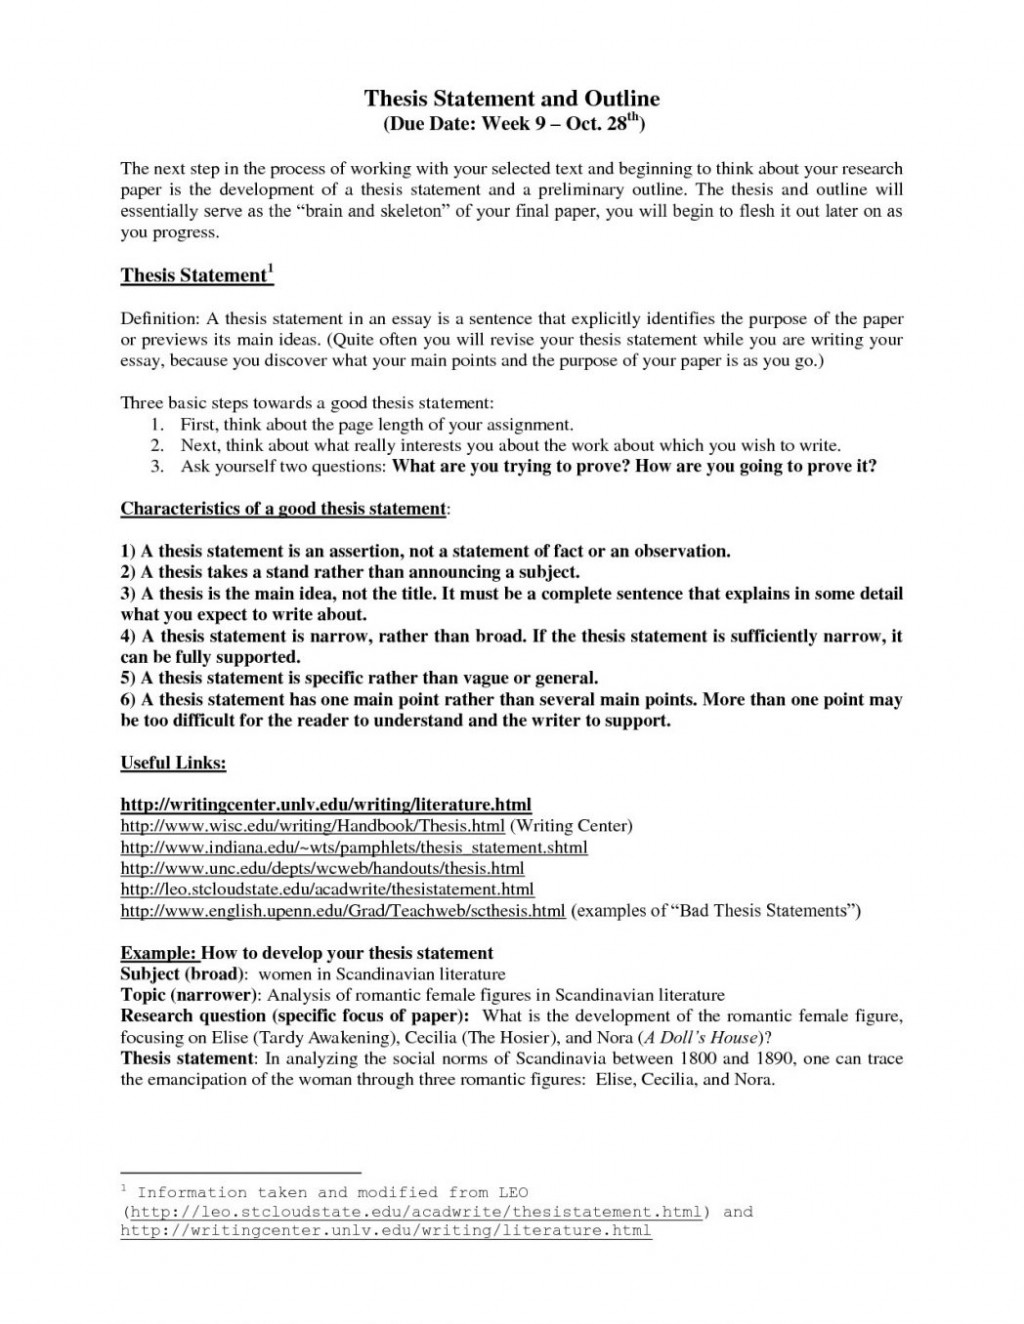 020 Thesis Statementamples For Essays Cute Easy Pics Your Argumentative Writing Good Persuasive Essay H Compare Contrast How To Write An Informativeample Of Do You Impressive Statement Examples Philosophy Papers Psychology Analytical Large